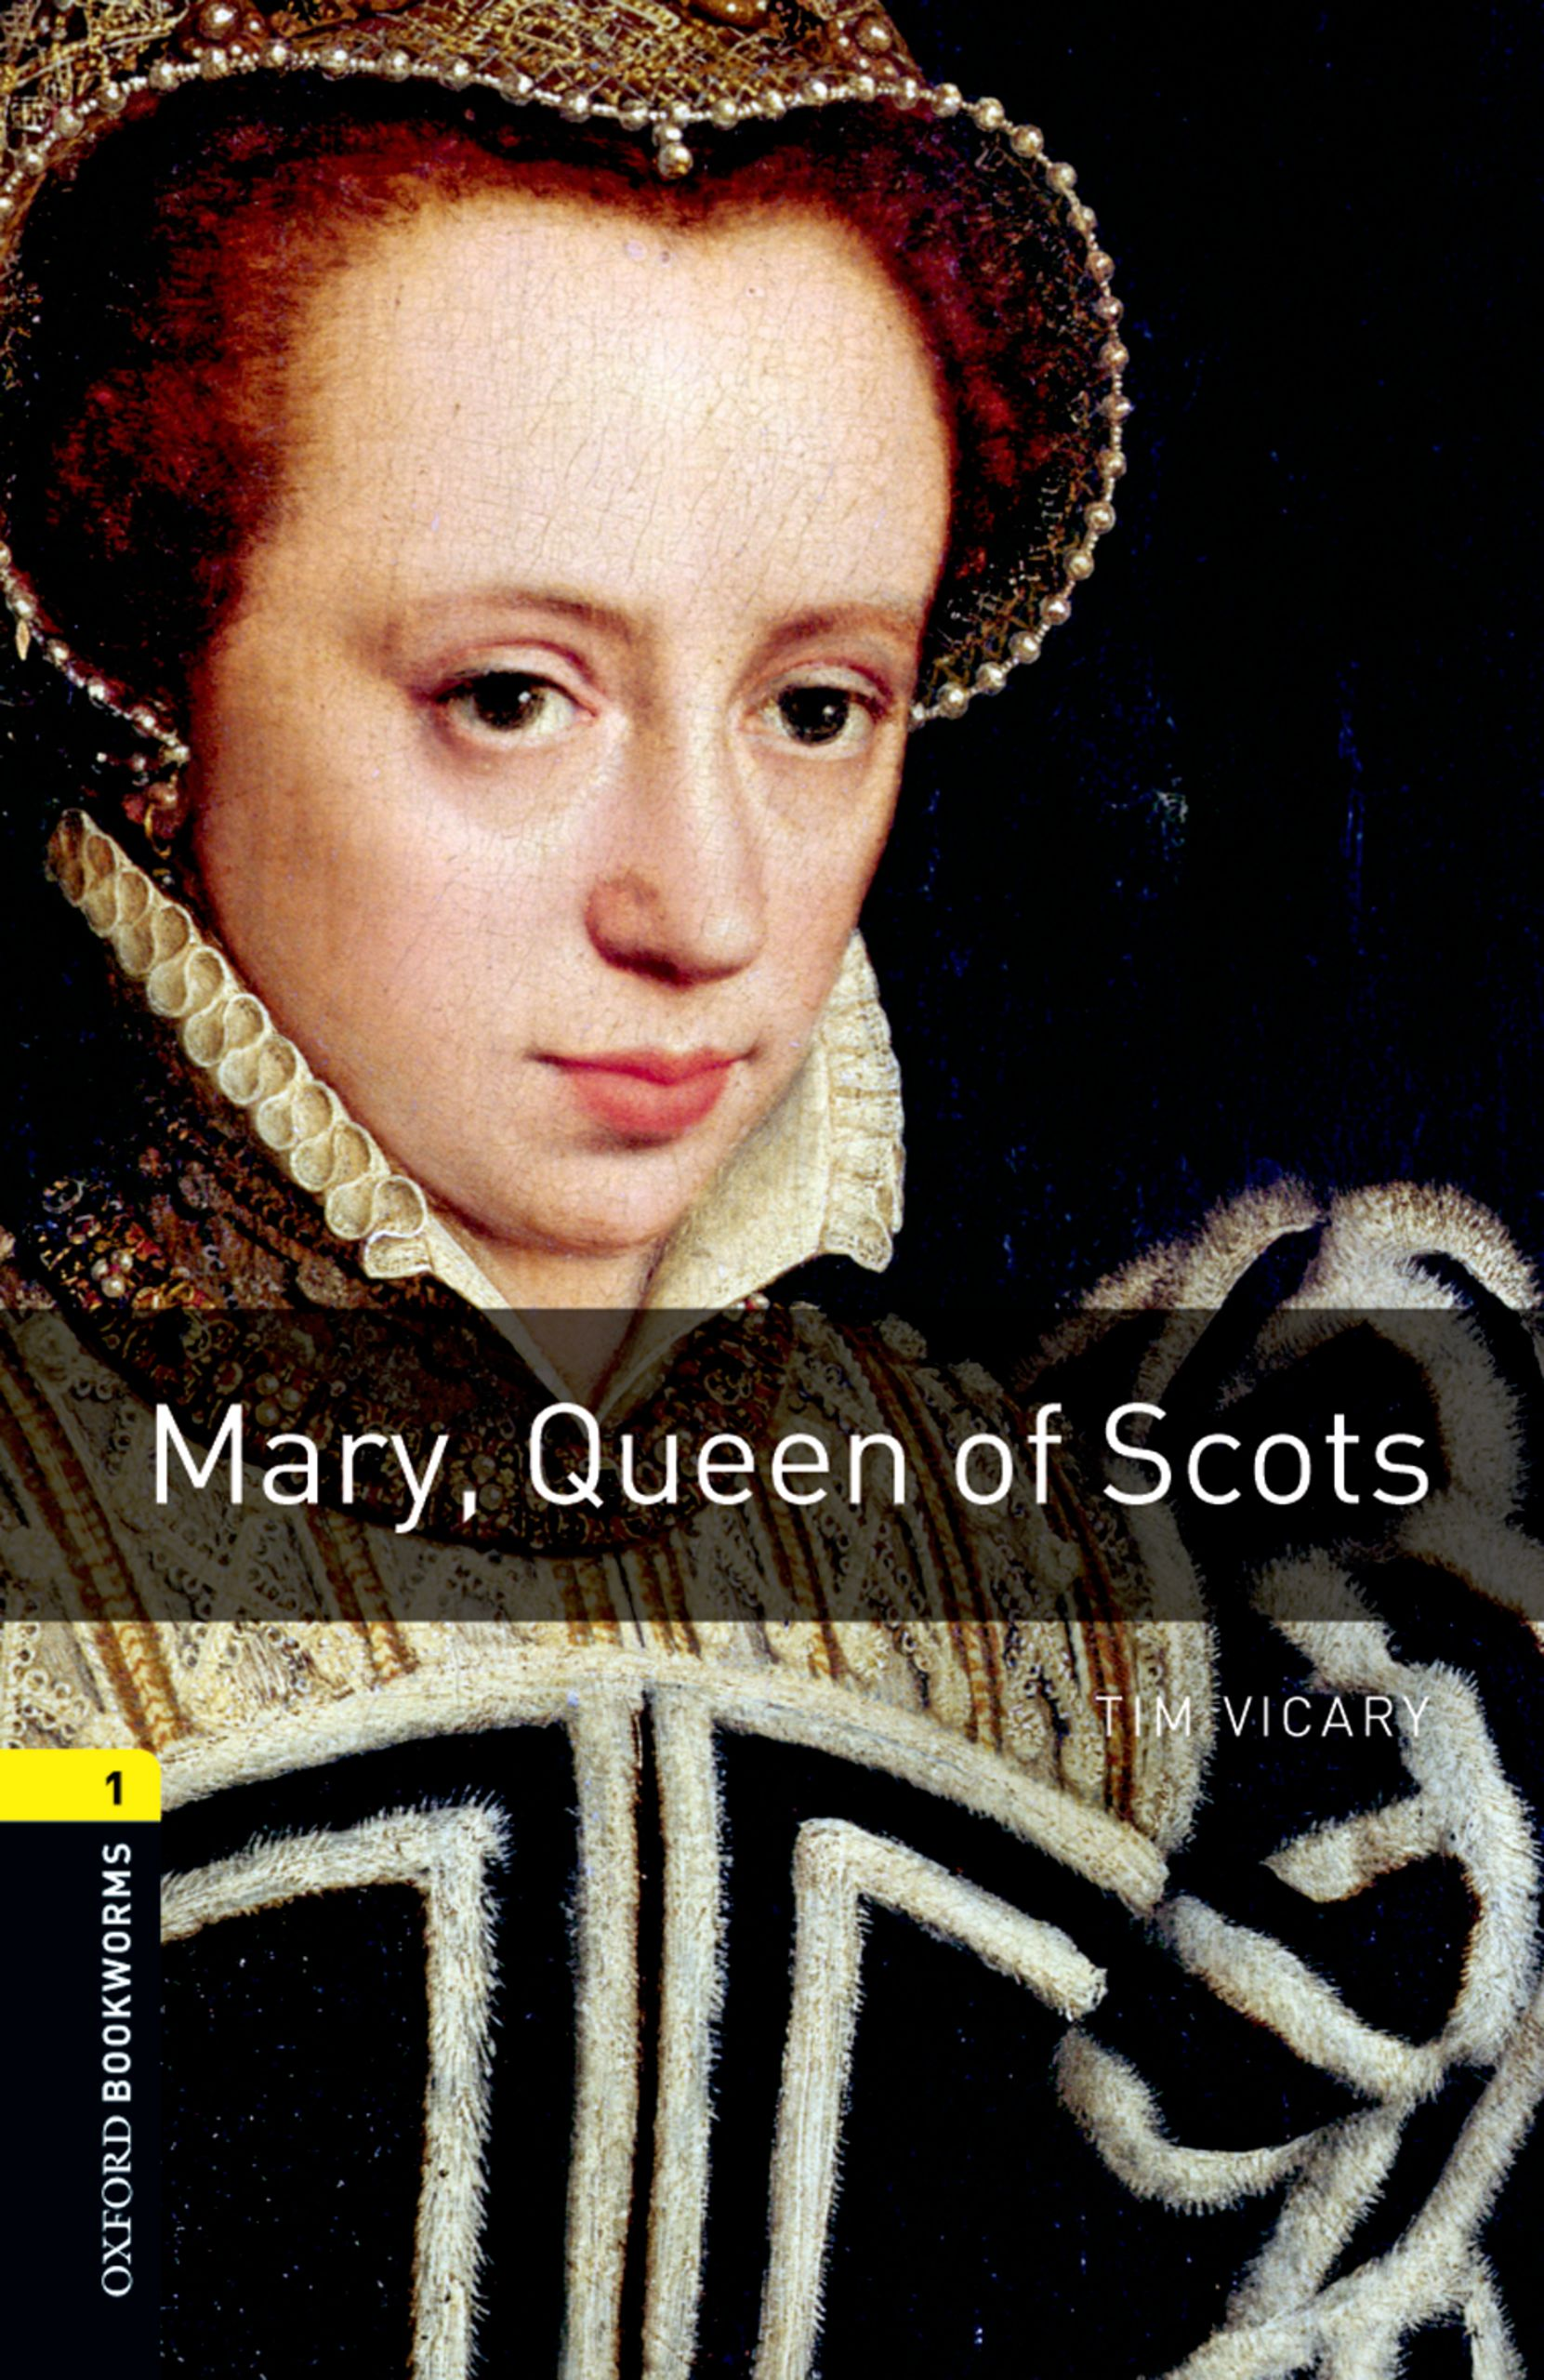 лучшая цена Tim Vicary Mary Queen of Scots